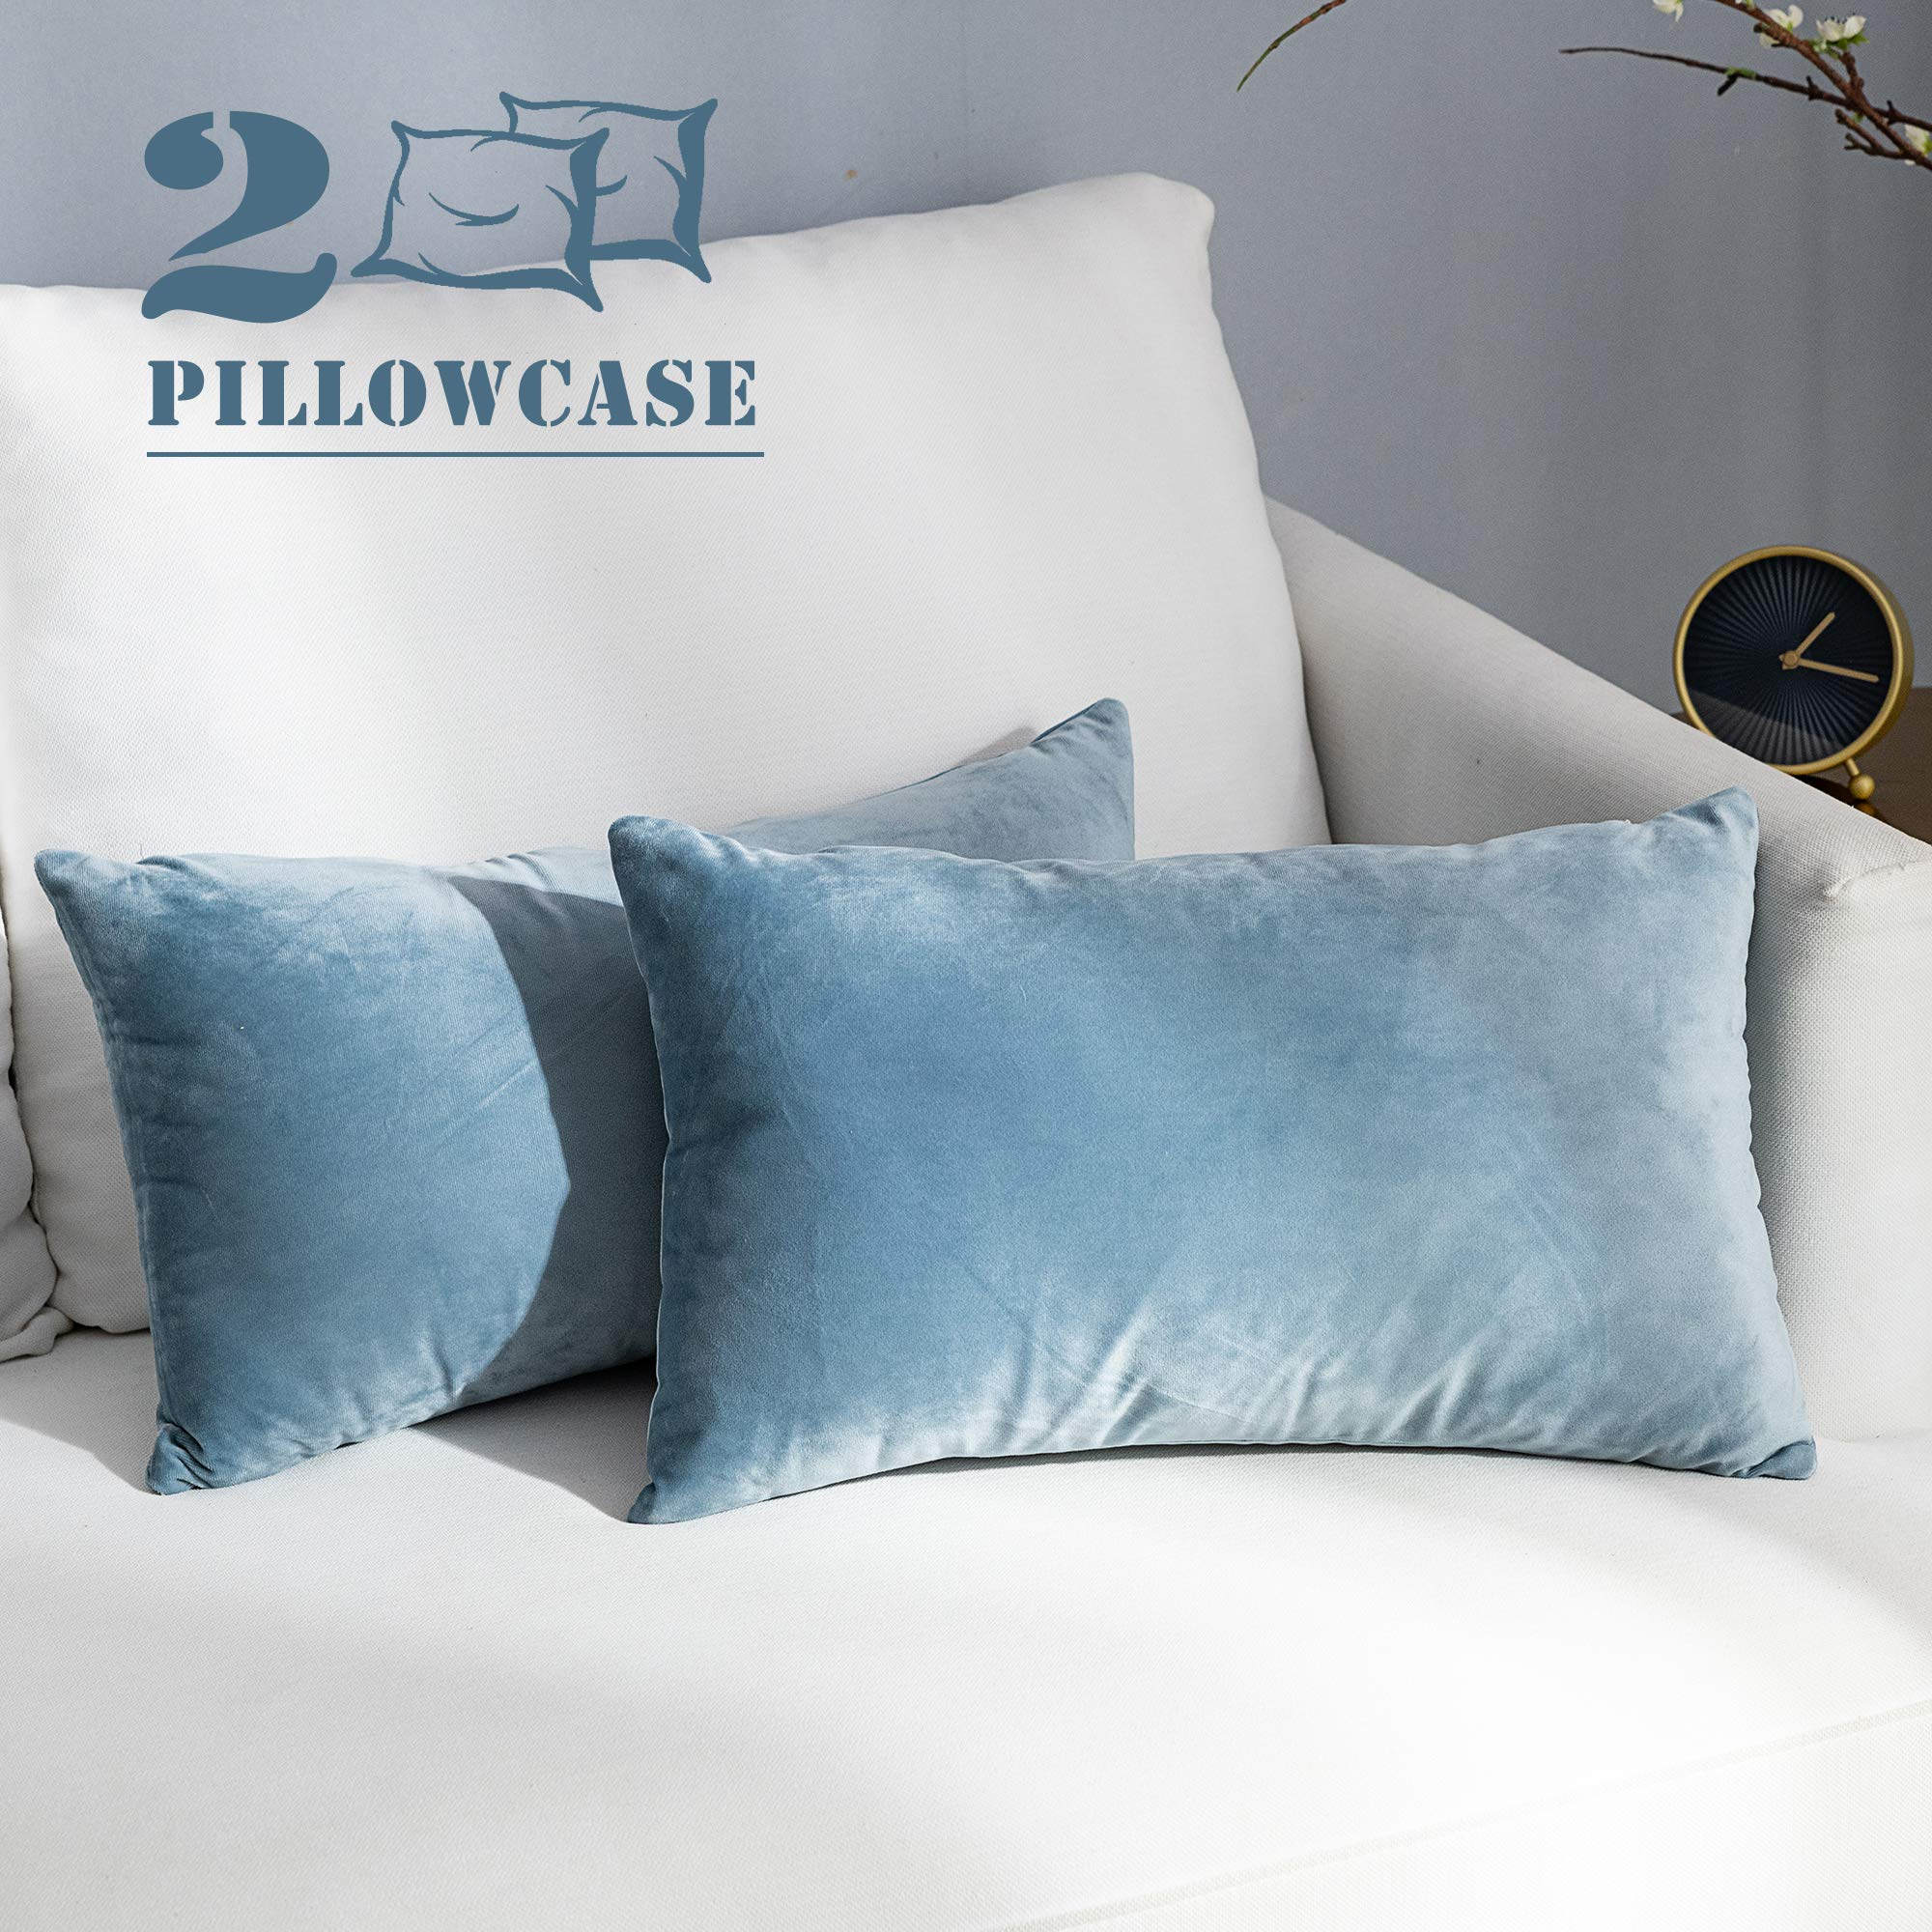 NANPIPER Set of 2 Velvet Soft Decorative Cushion Throw Pillow Covers 12x20 Inch/30x50 cm Cozy Solid Velvet Square Pillowcase Cushion Covers Blue Grey for Couch and Bed